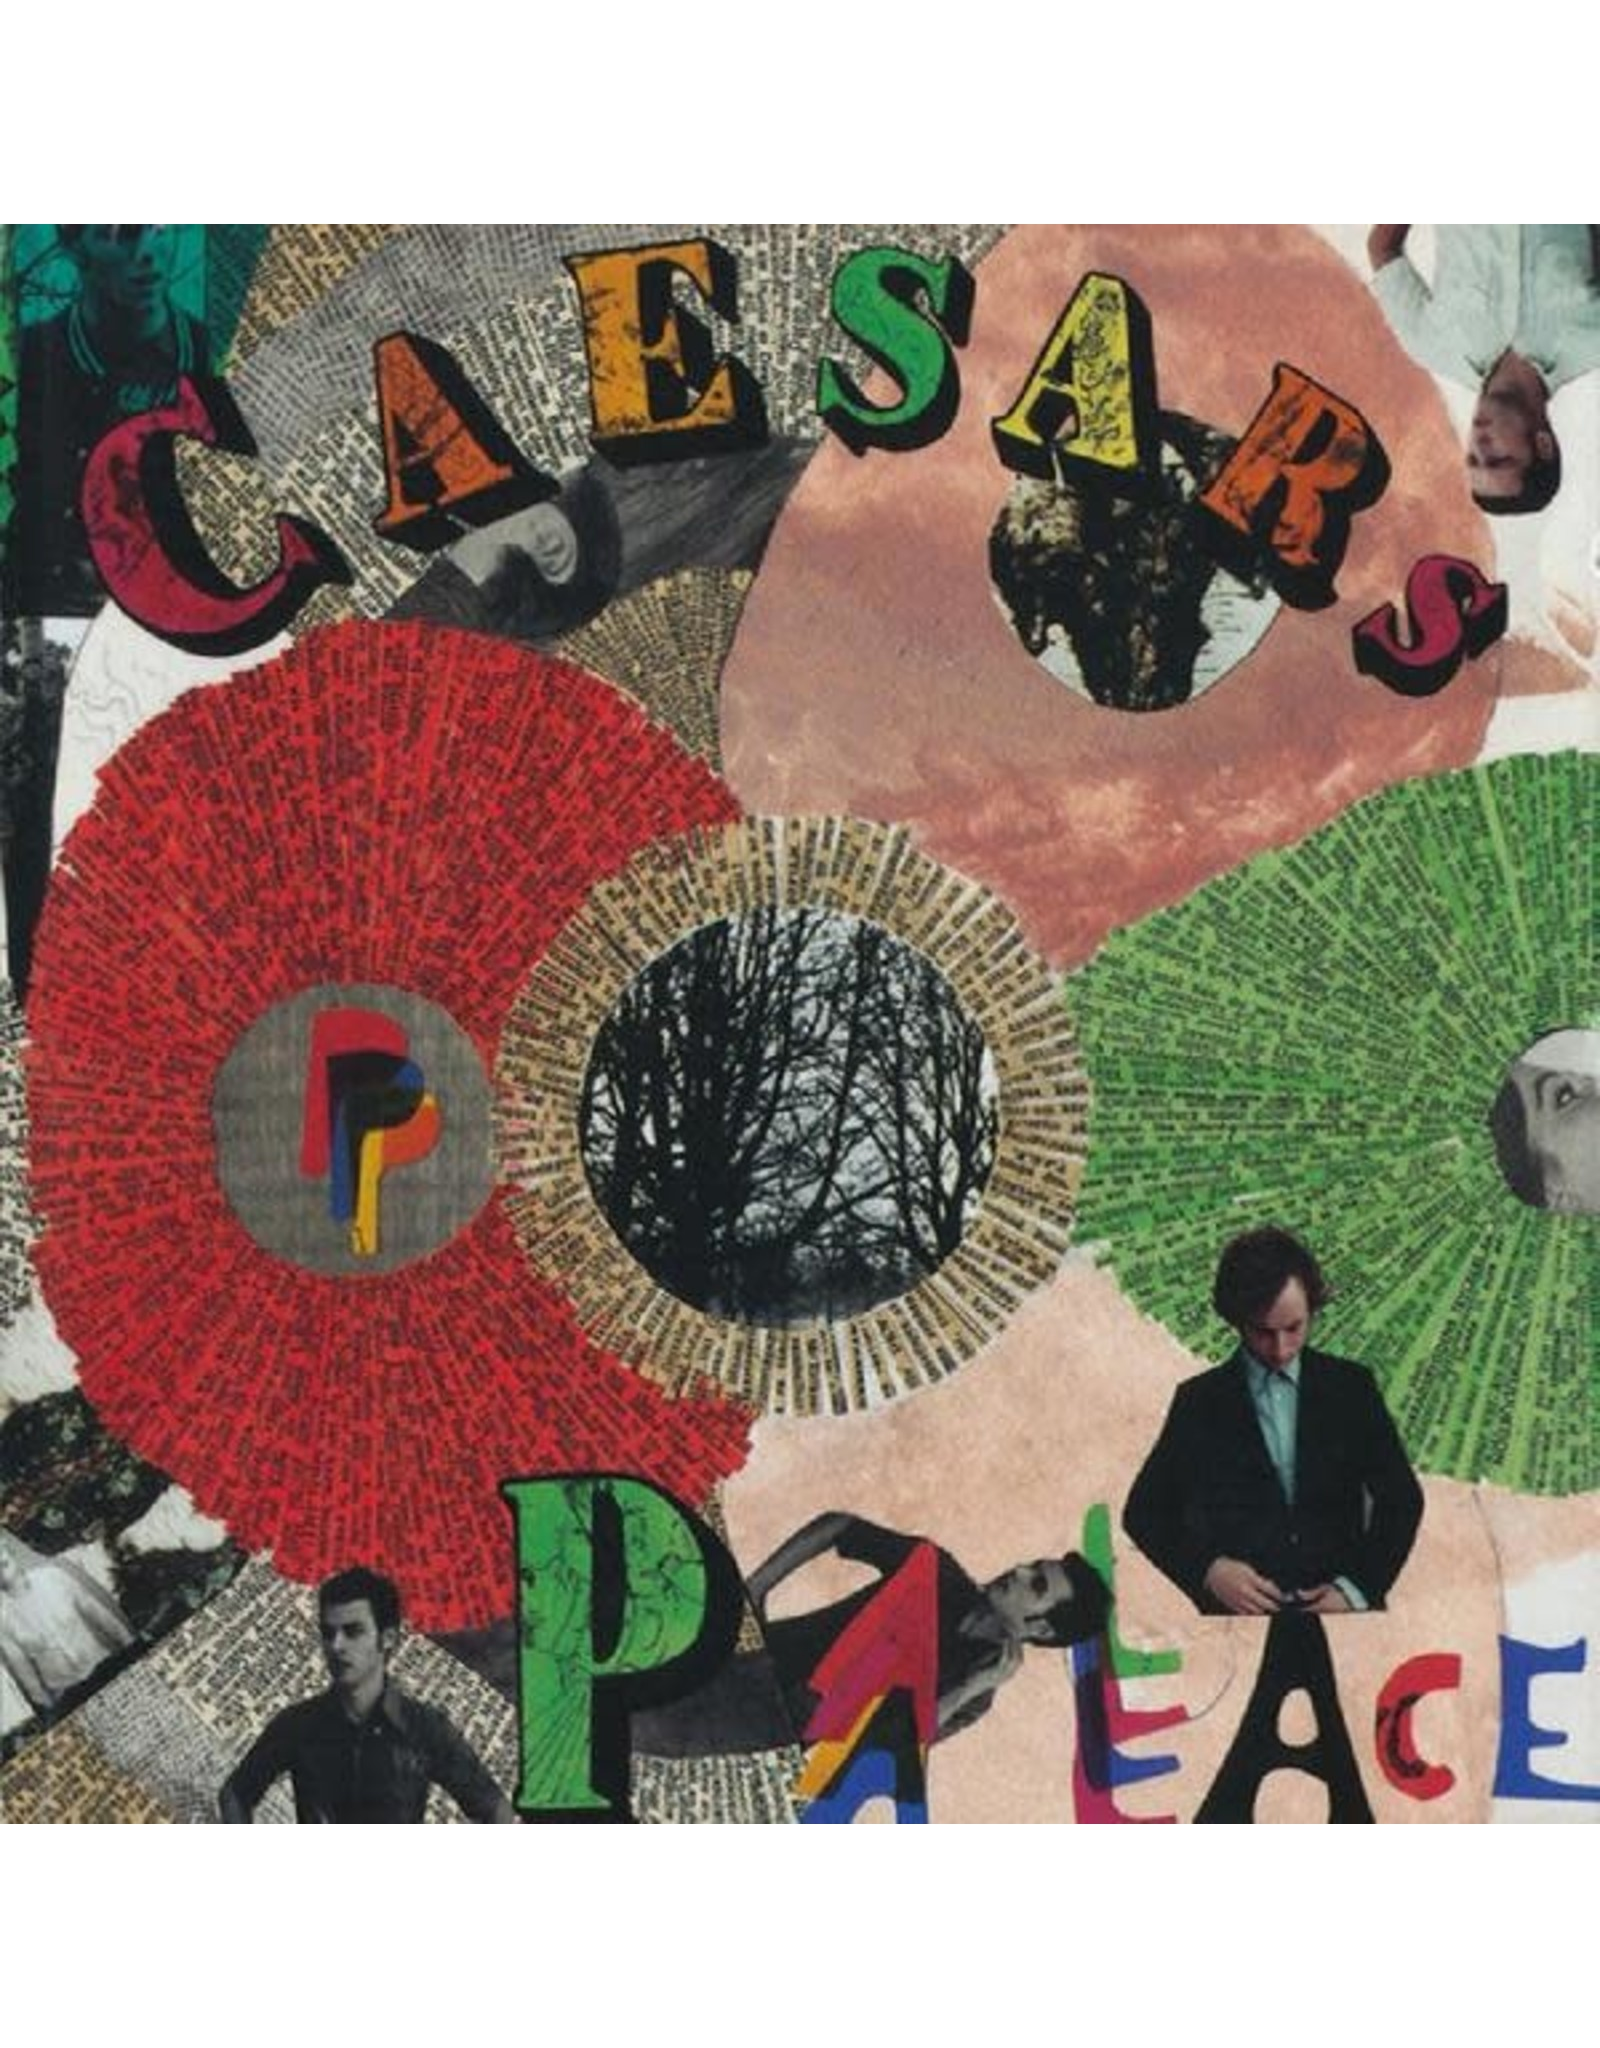 New Vinyl Caesars - Youth Is Wasted On The Young LP